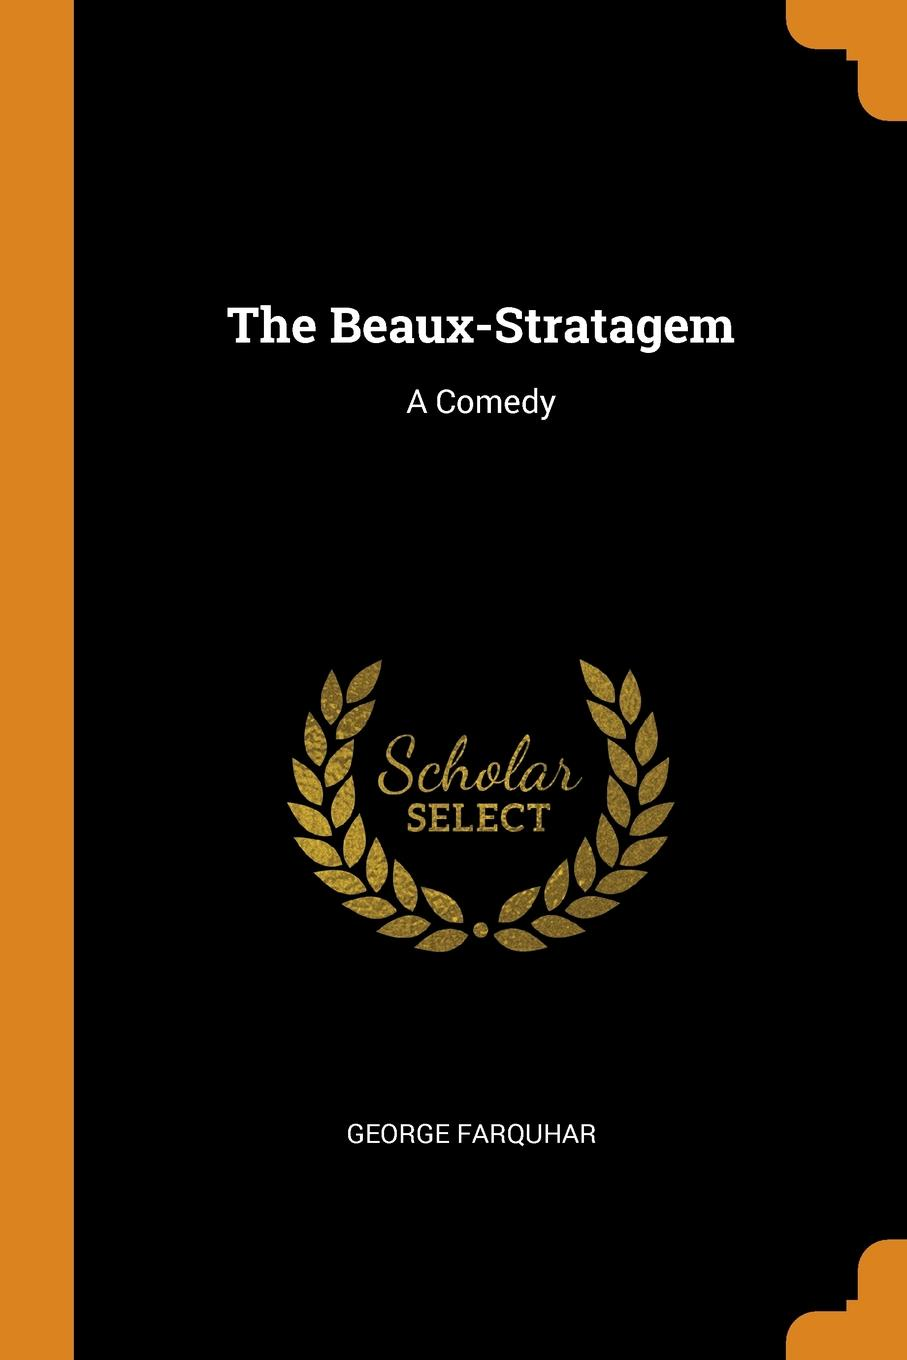 The Beaux-Stratagem. A Comedy